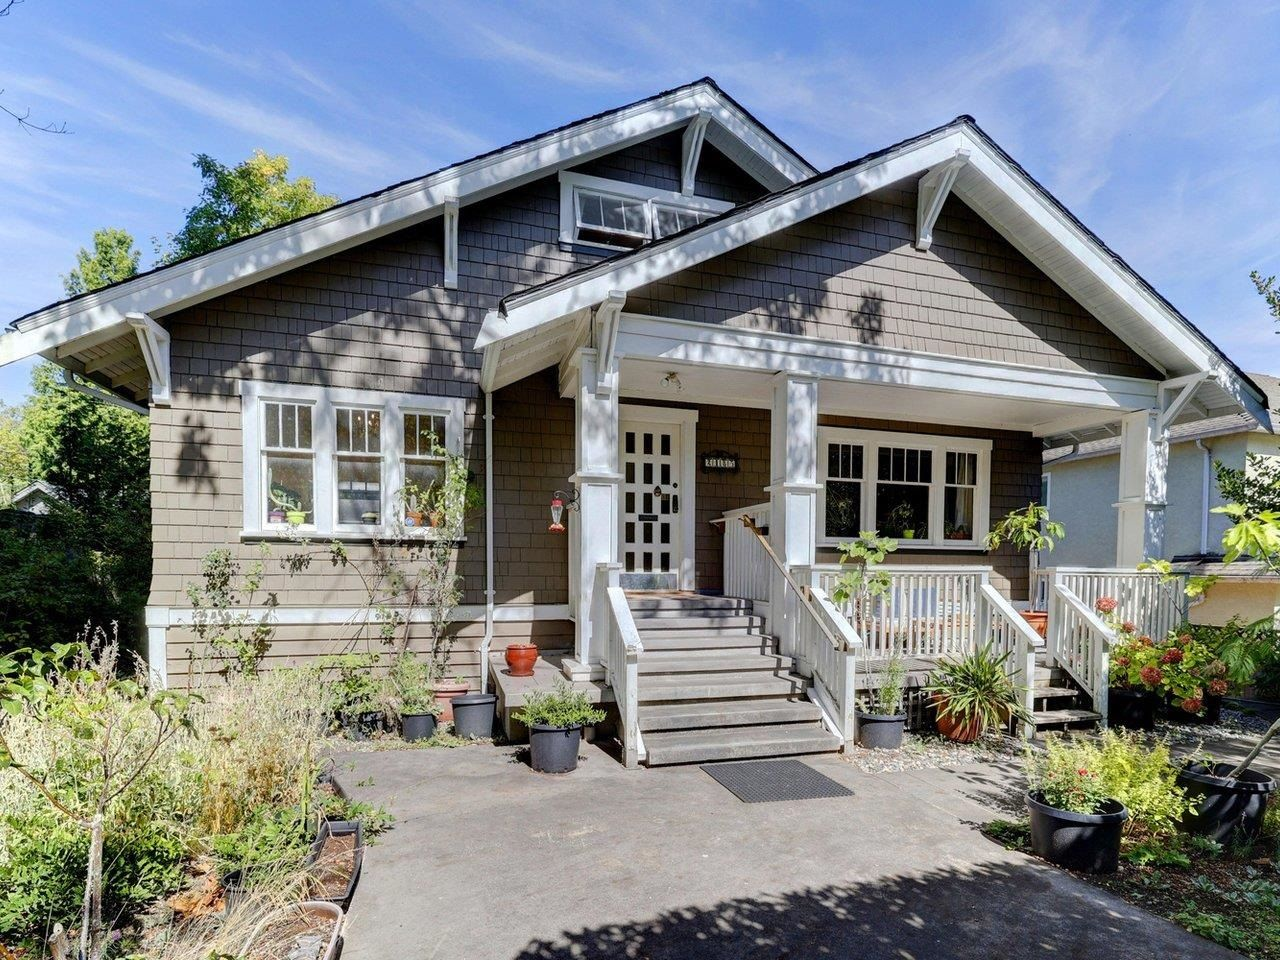 Main Photo: 2185 W 37TH Avenue in Vancouver: Quilchena House for sale (Vancouver West)  : MLS®# R2615988